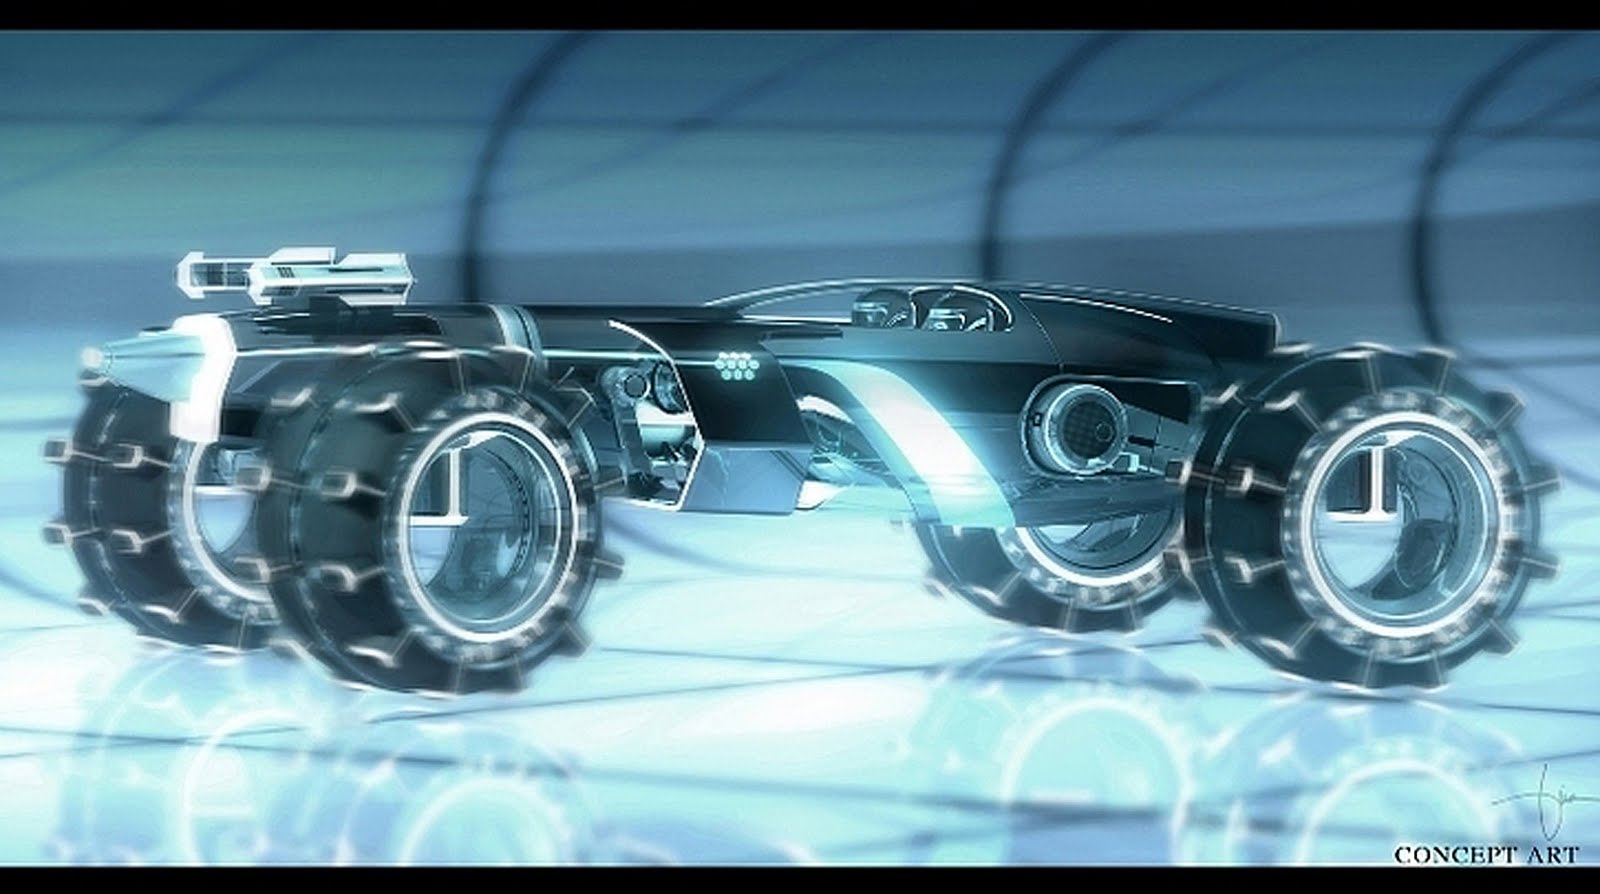 Sci Fi Vehicles Concept Art http://dsngsfm.blogspot.com/2011/08/more-concept-vehicles-cars-motorcycles.html